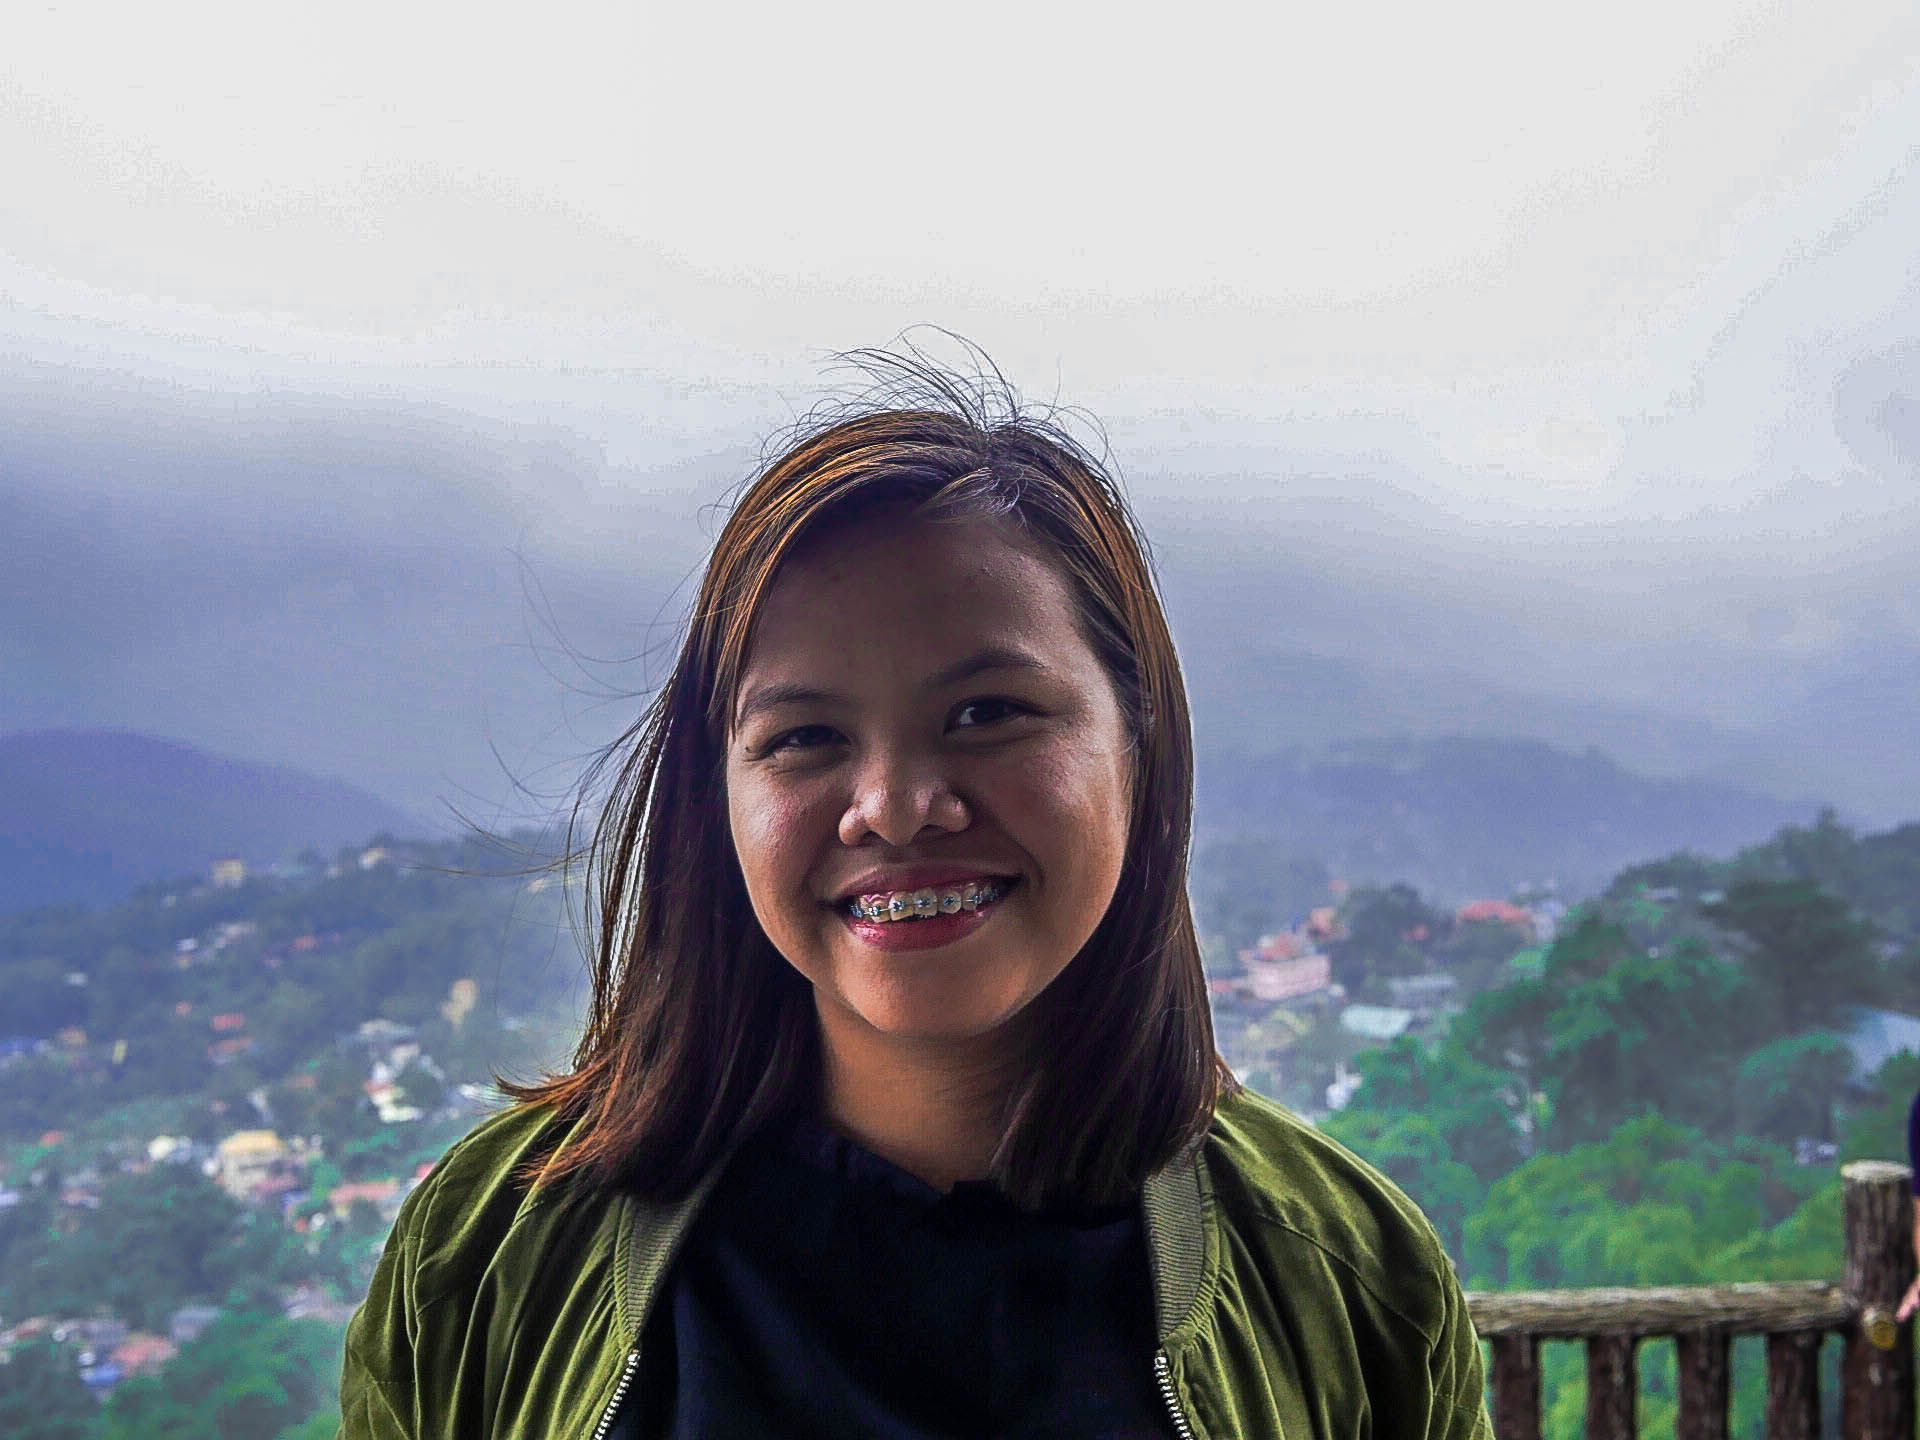 My Filipina girlfriend at Mines View Park in Baguio City